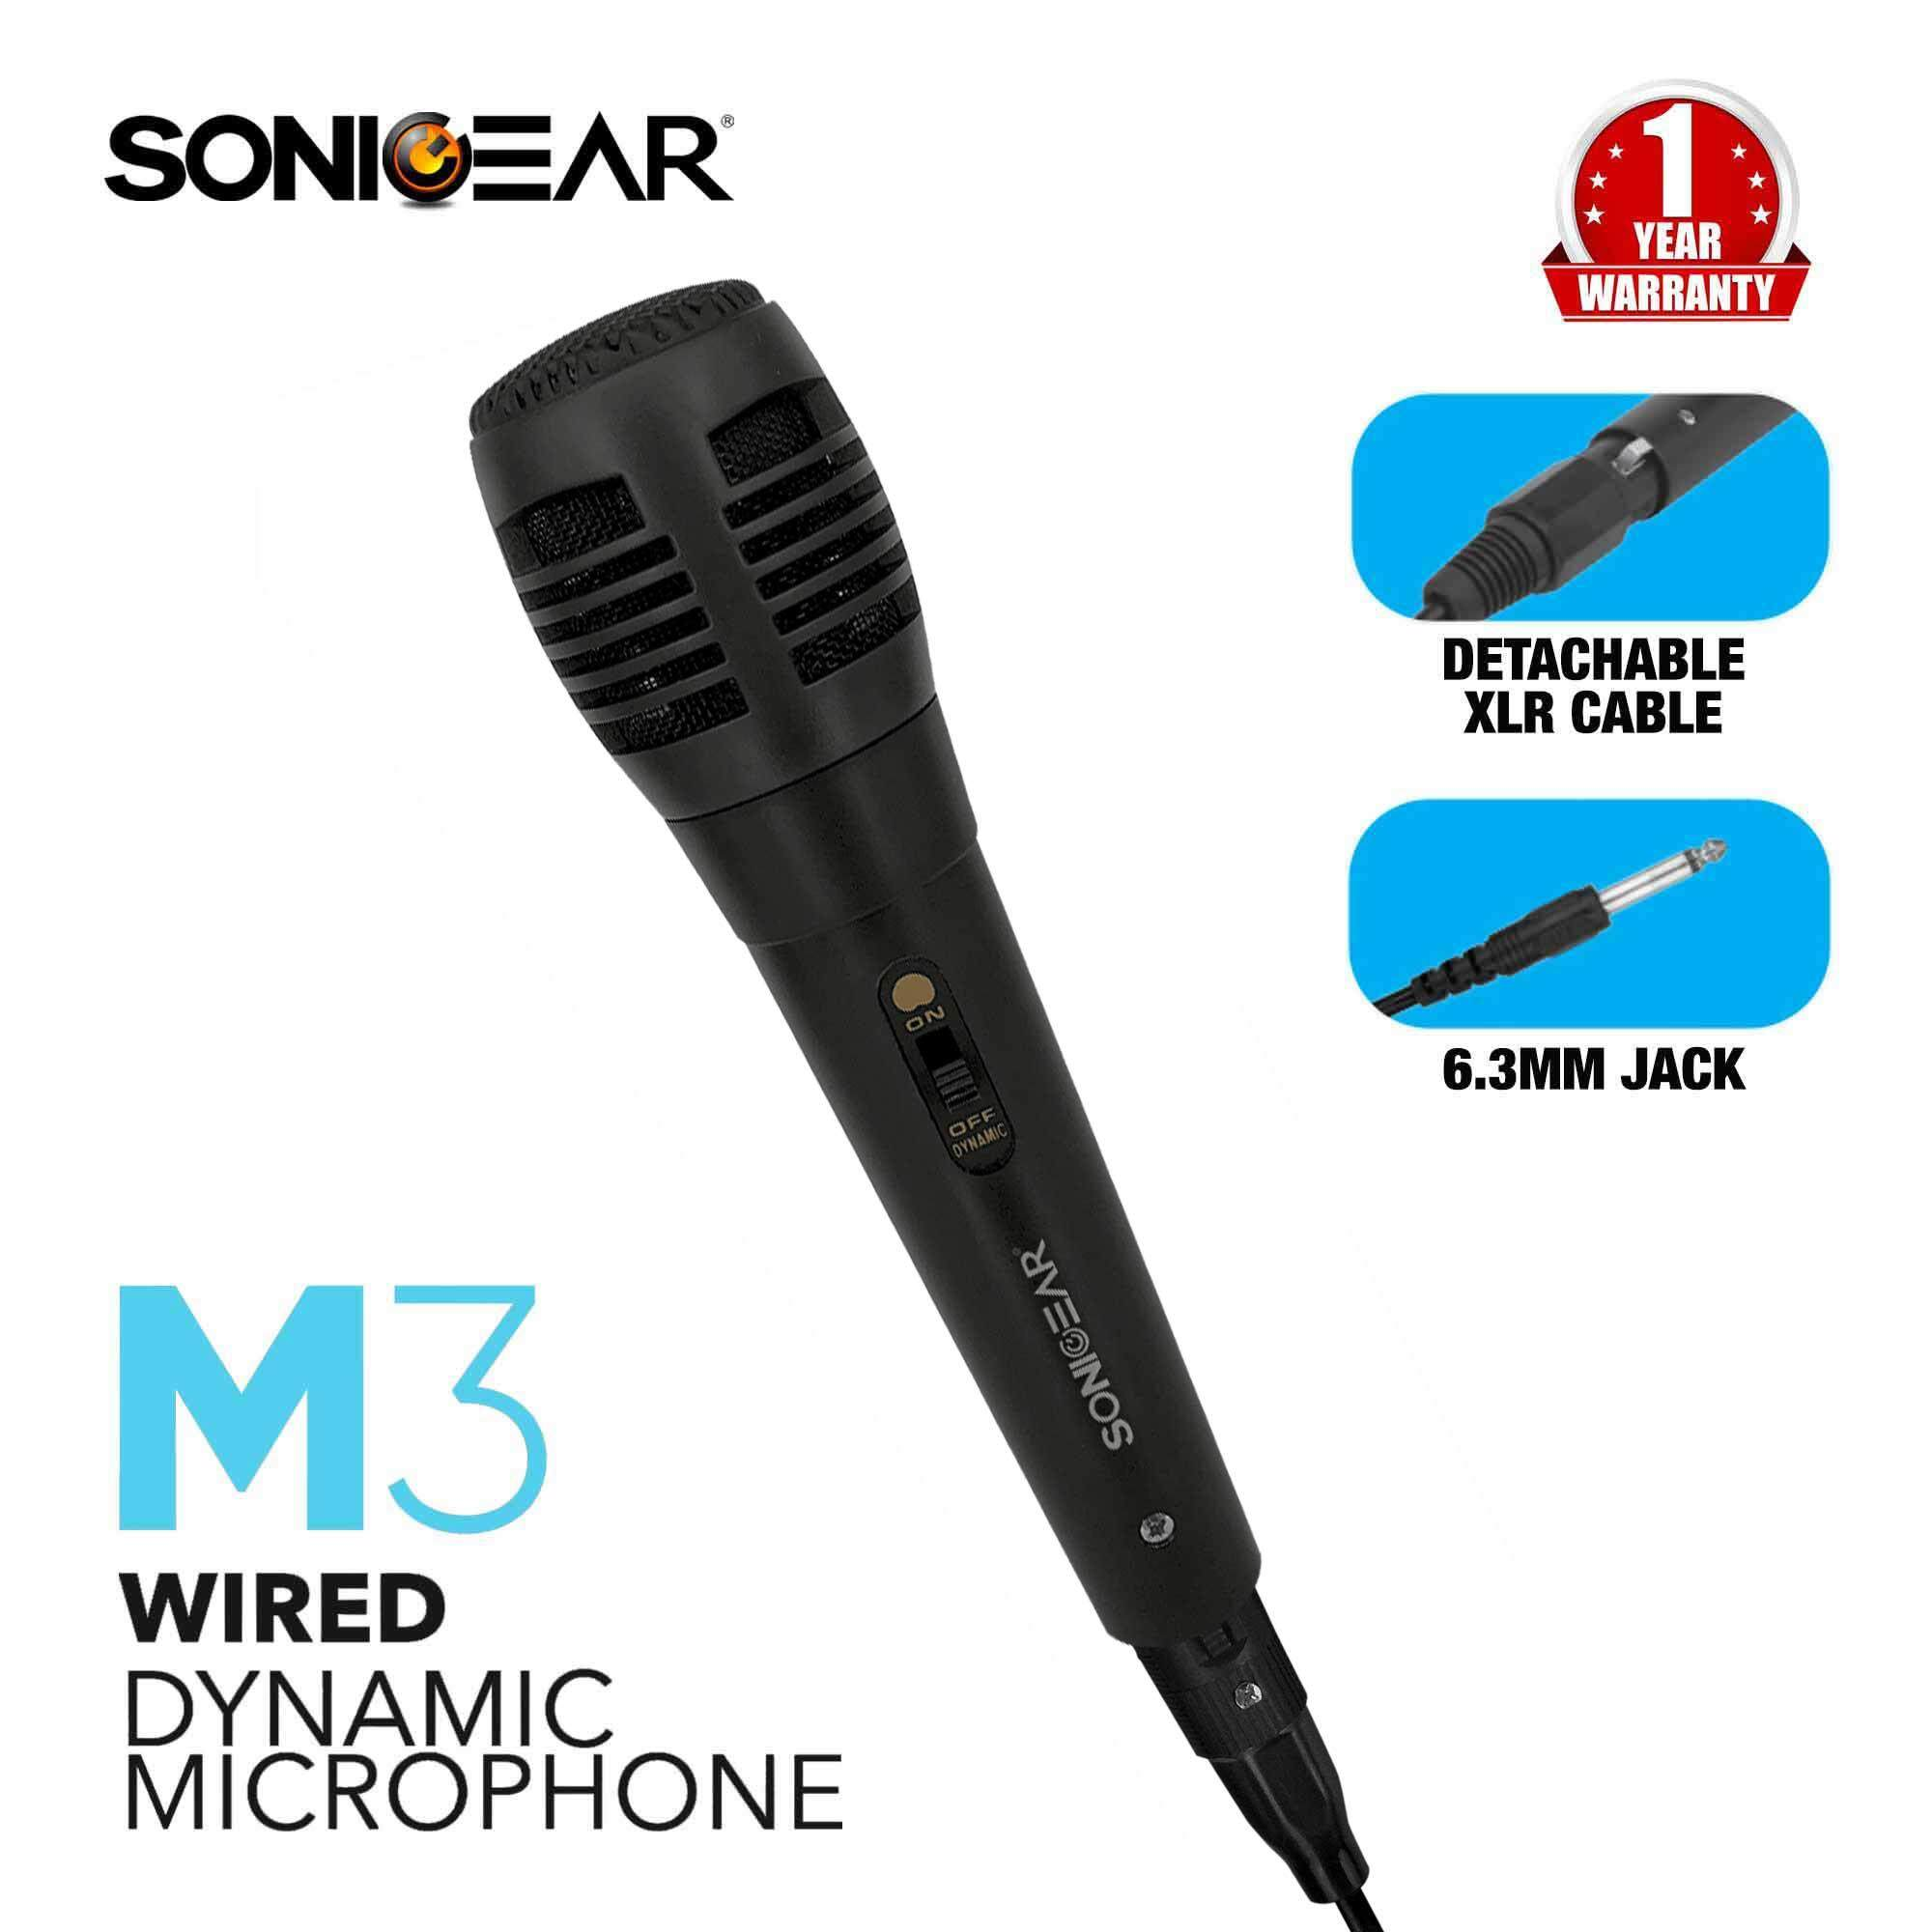 SonicGear M3 Wired Dynamic Microphone